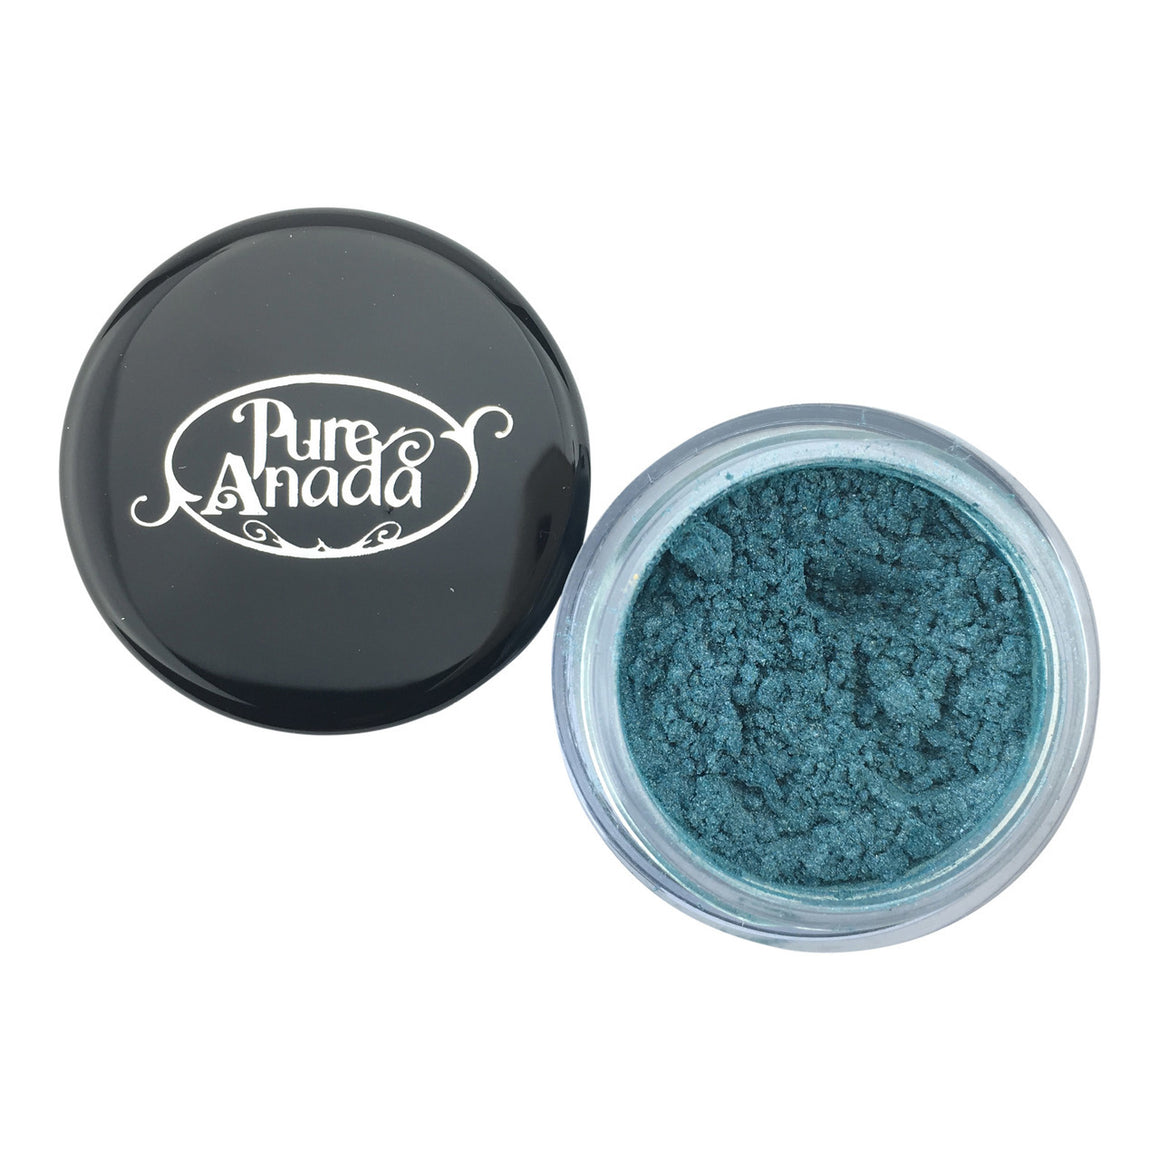 Bahama - Luminous Eye Loose Shadow 1g-PureAnada-Live in the Light